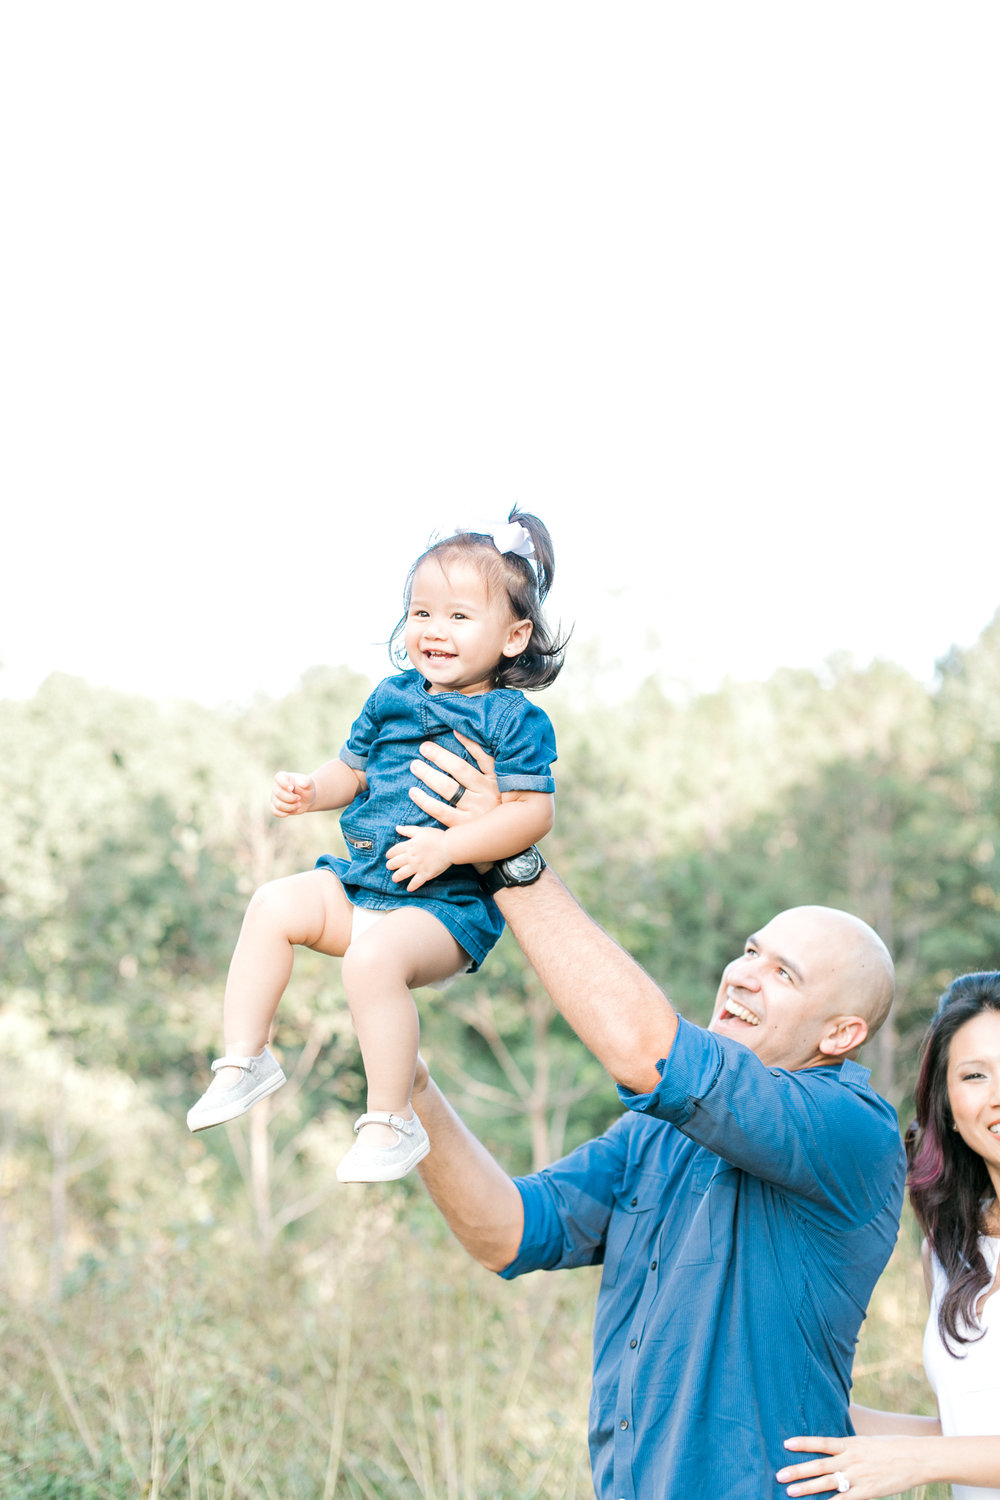 Fall-Family-Session-Fisher-Farm-Charlotte-NC-Danielle-Gallo-Photography.jpg